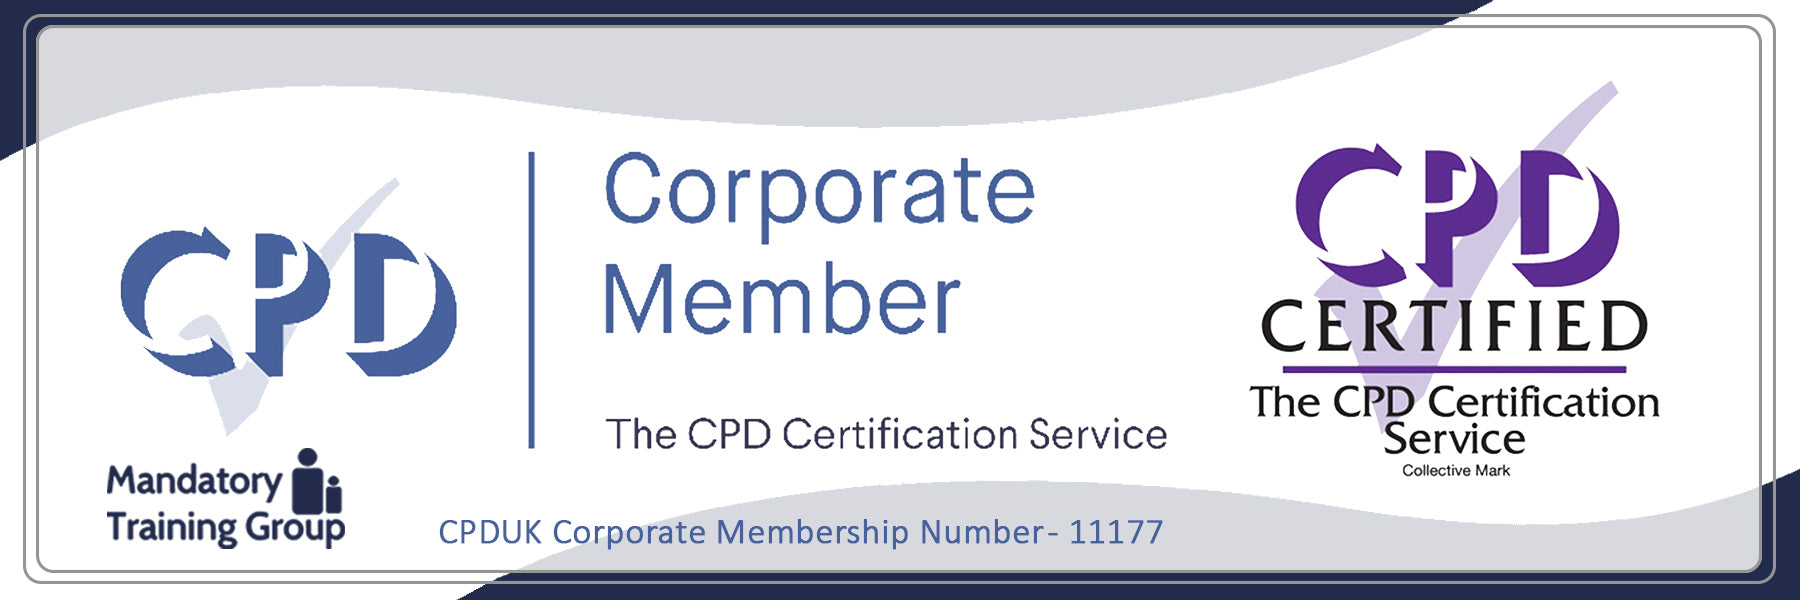 Delegation and Referrals - Enhanced Dental CPD Course - The Mandatory Training Group UK -